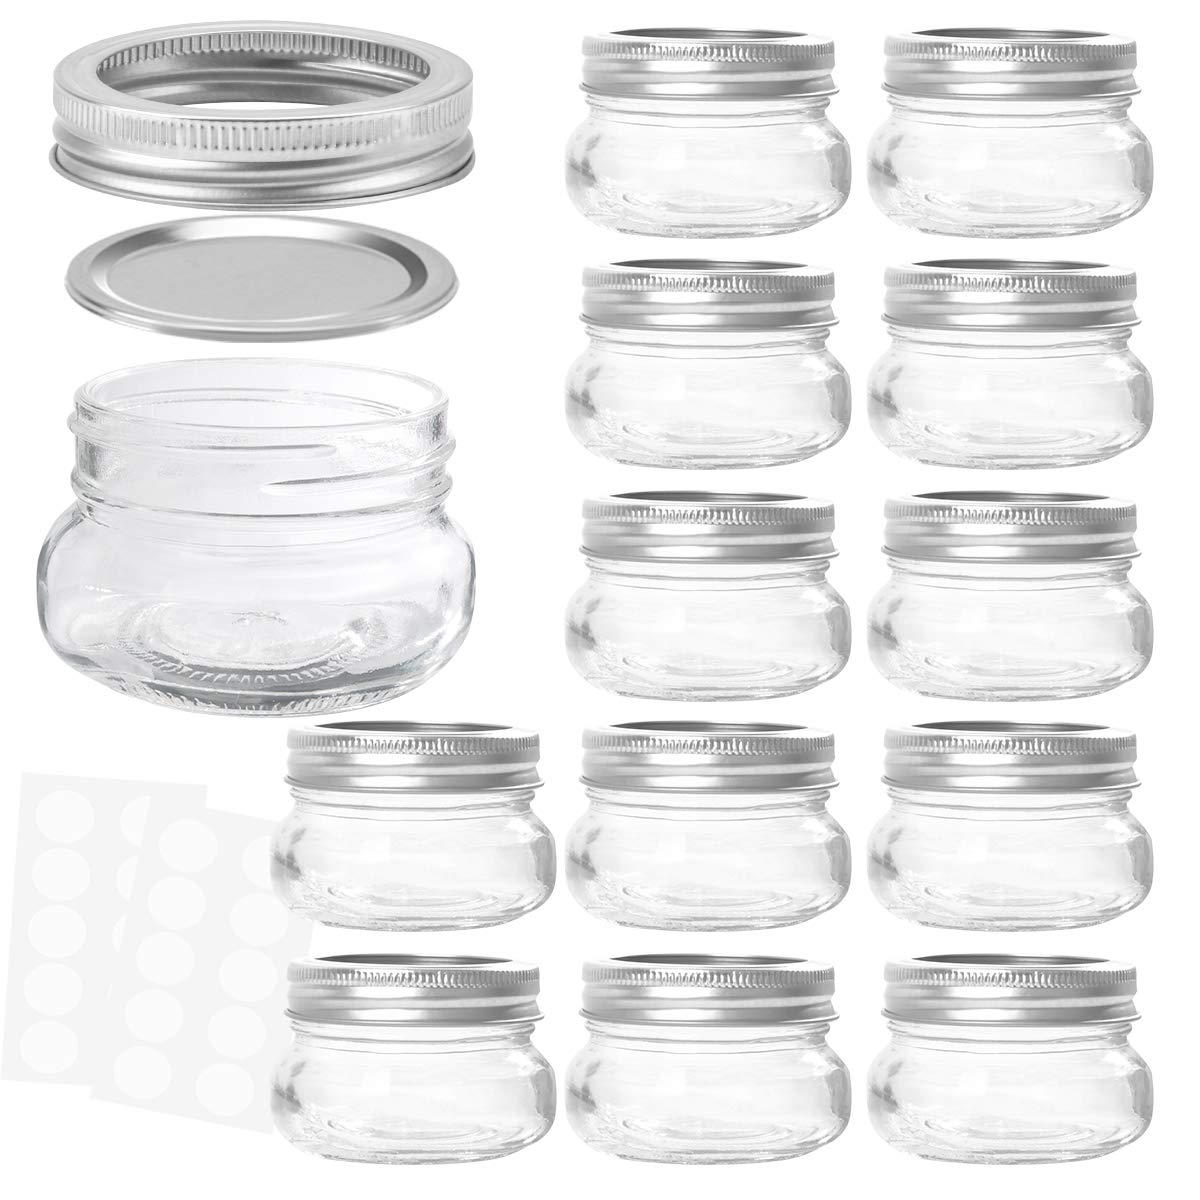 KAMOTA Mason Jars 4OZ With Regular Lids and Bands, Ideal for Jam, Honey, Wedding Favors, Shower Favors, Baby Foods, DIY Magnetic Spice Jars, 12 PACK, 20 Whiteboard Labels Included